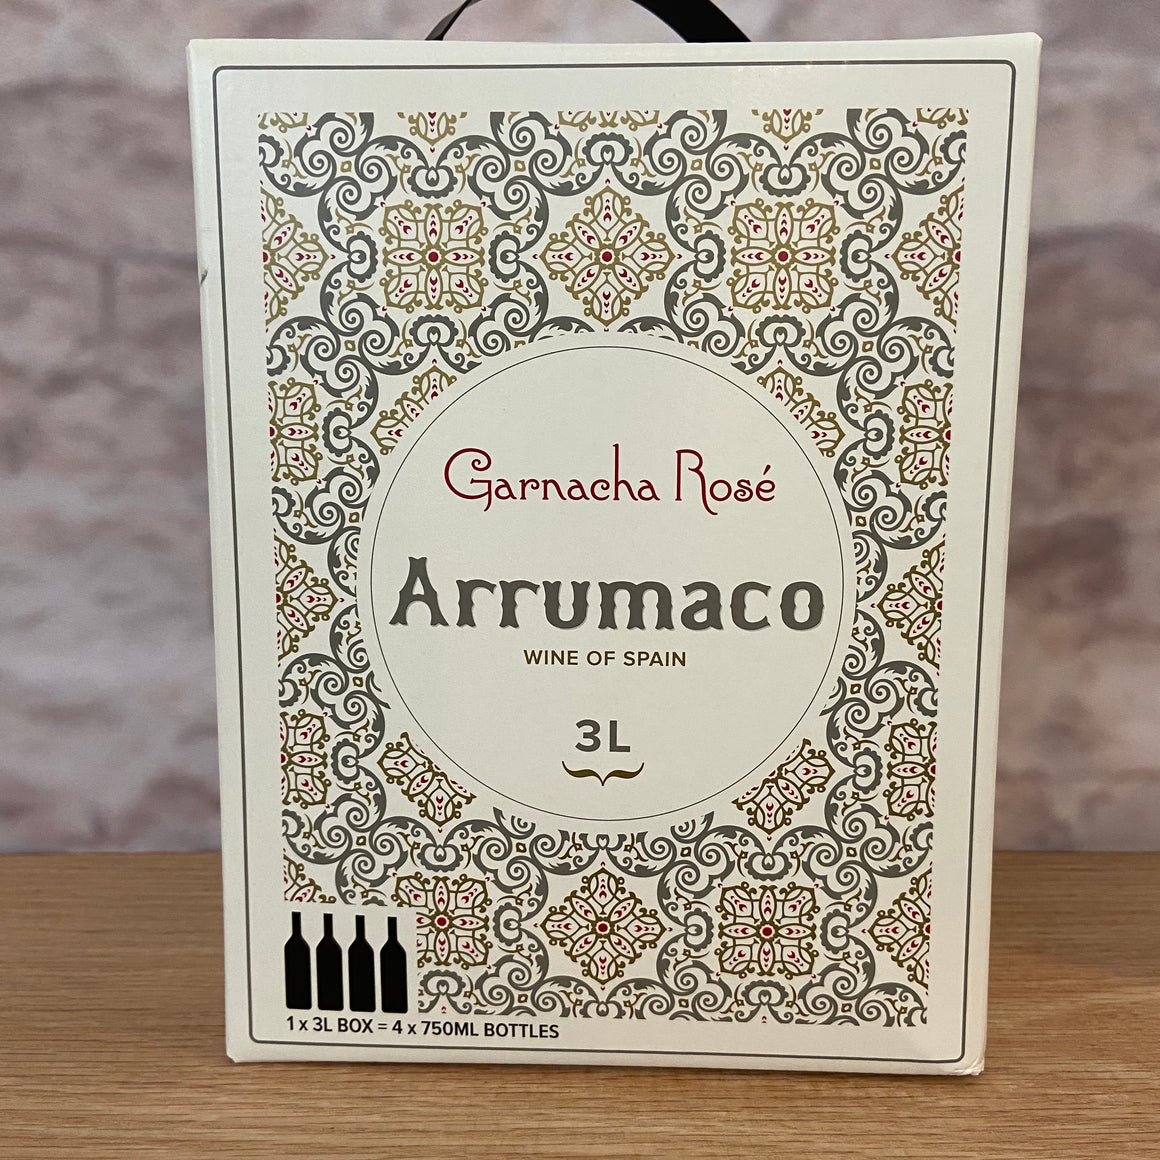 ARRUMACO GARNACHA ROSE' 2019 3.0L BAG IN BOX